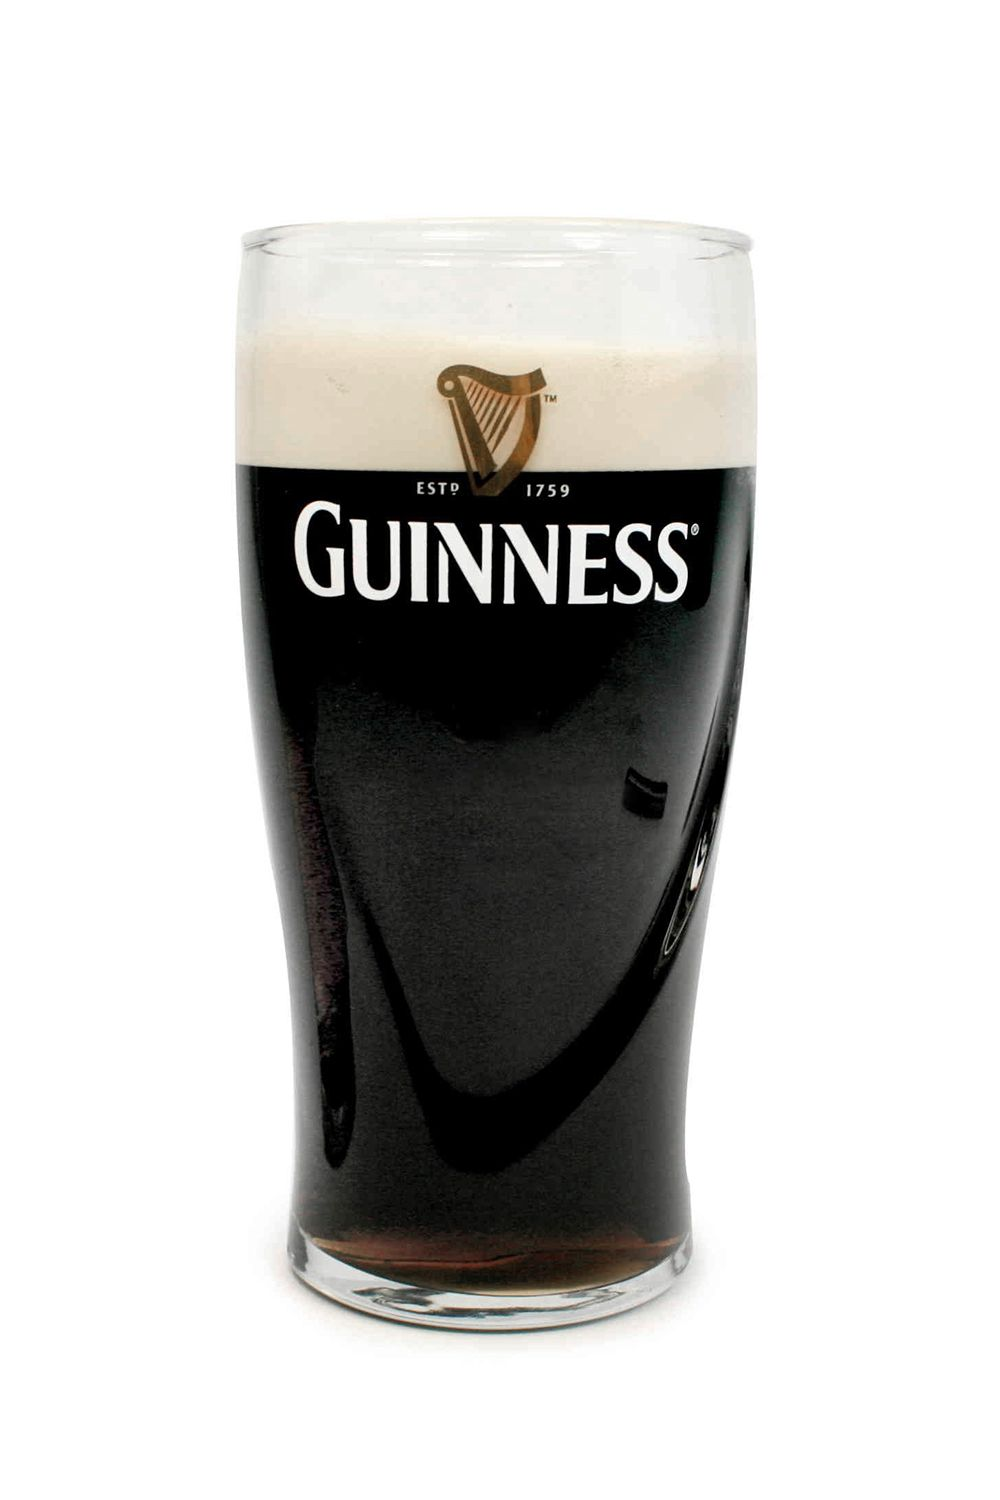 "<p>Every male relative's favorite drink also happens to be a great waist-trimmer. &nbsp&#x3B;The bitter coffee and caramel mix never gets old.&nbsp&#x3B;</p><p><strong data-redactor-tag=""strong"">Guinness Draught (4.2% ABV), 125 calories</strong></p>"